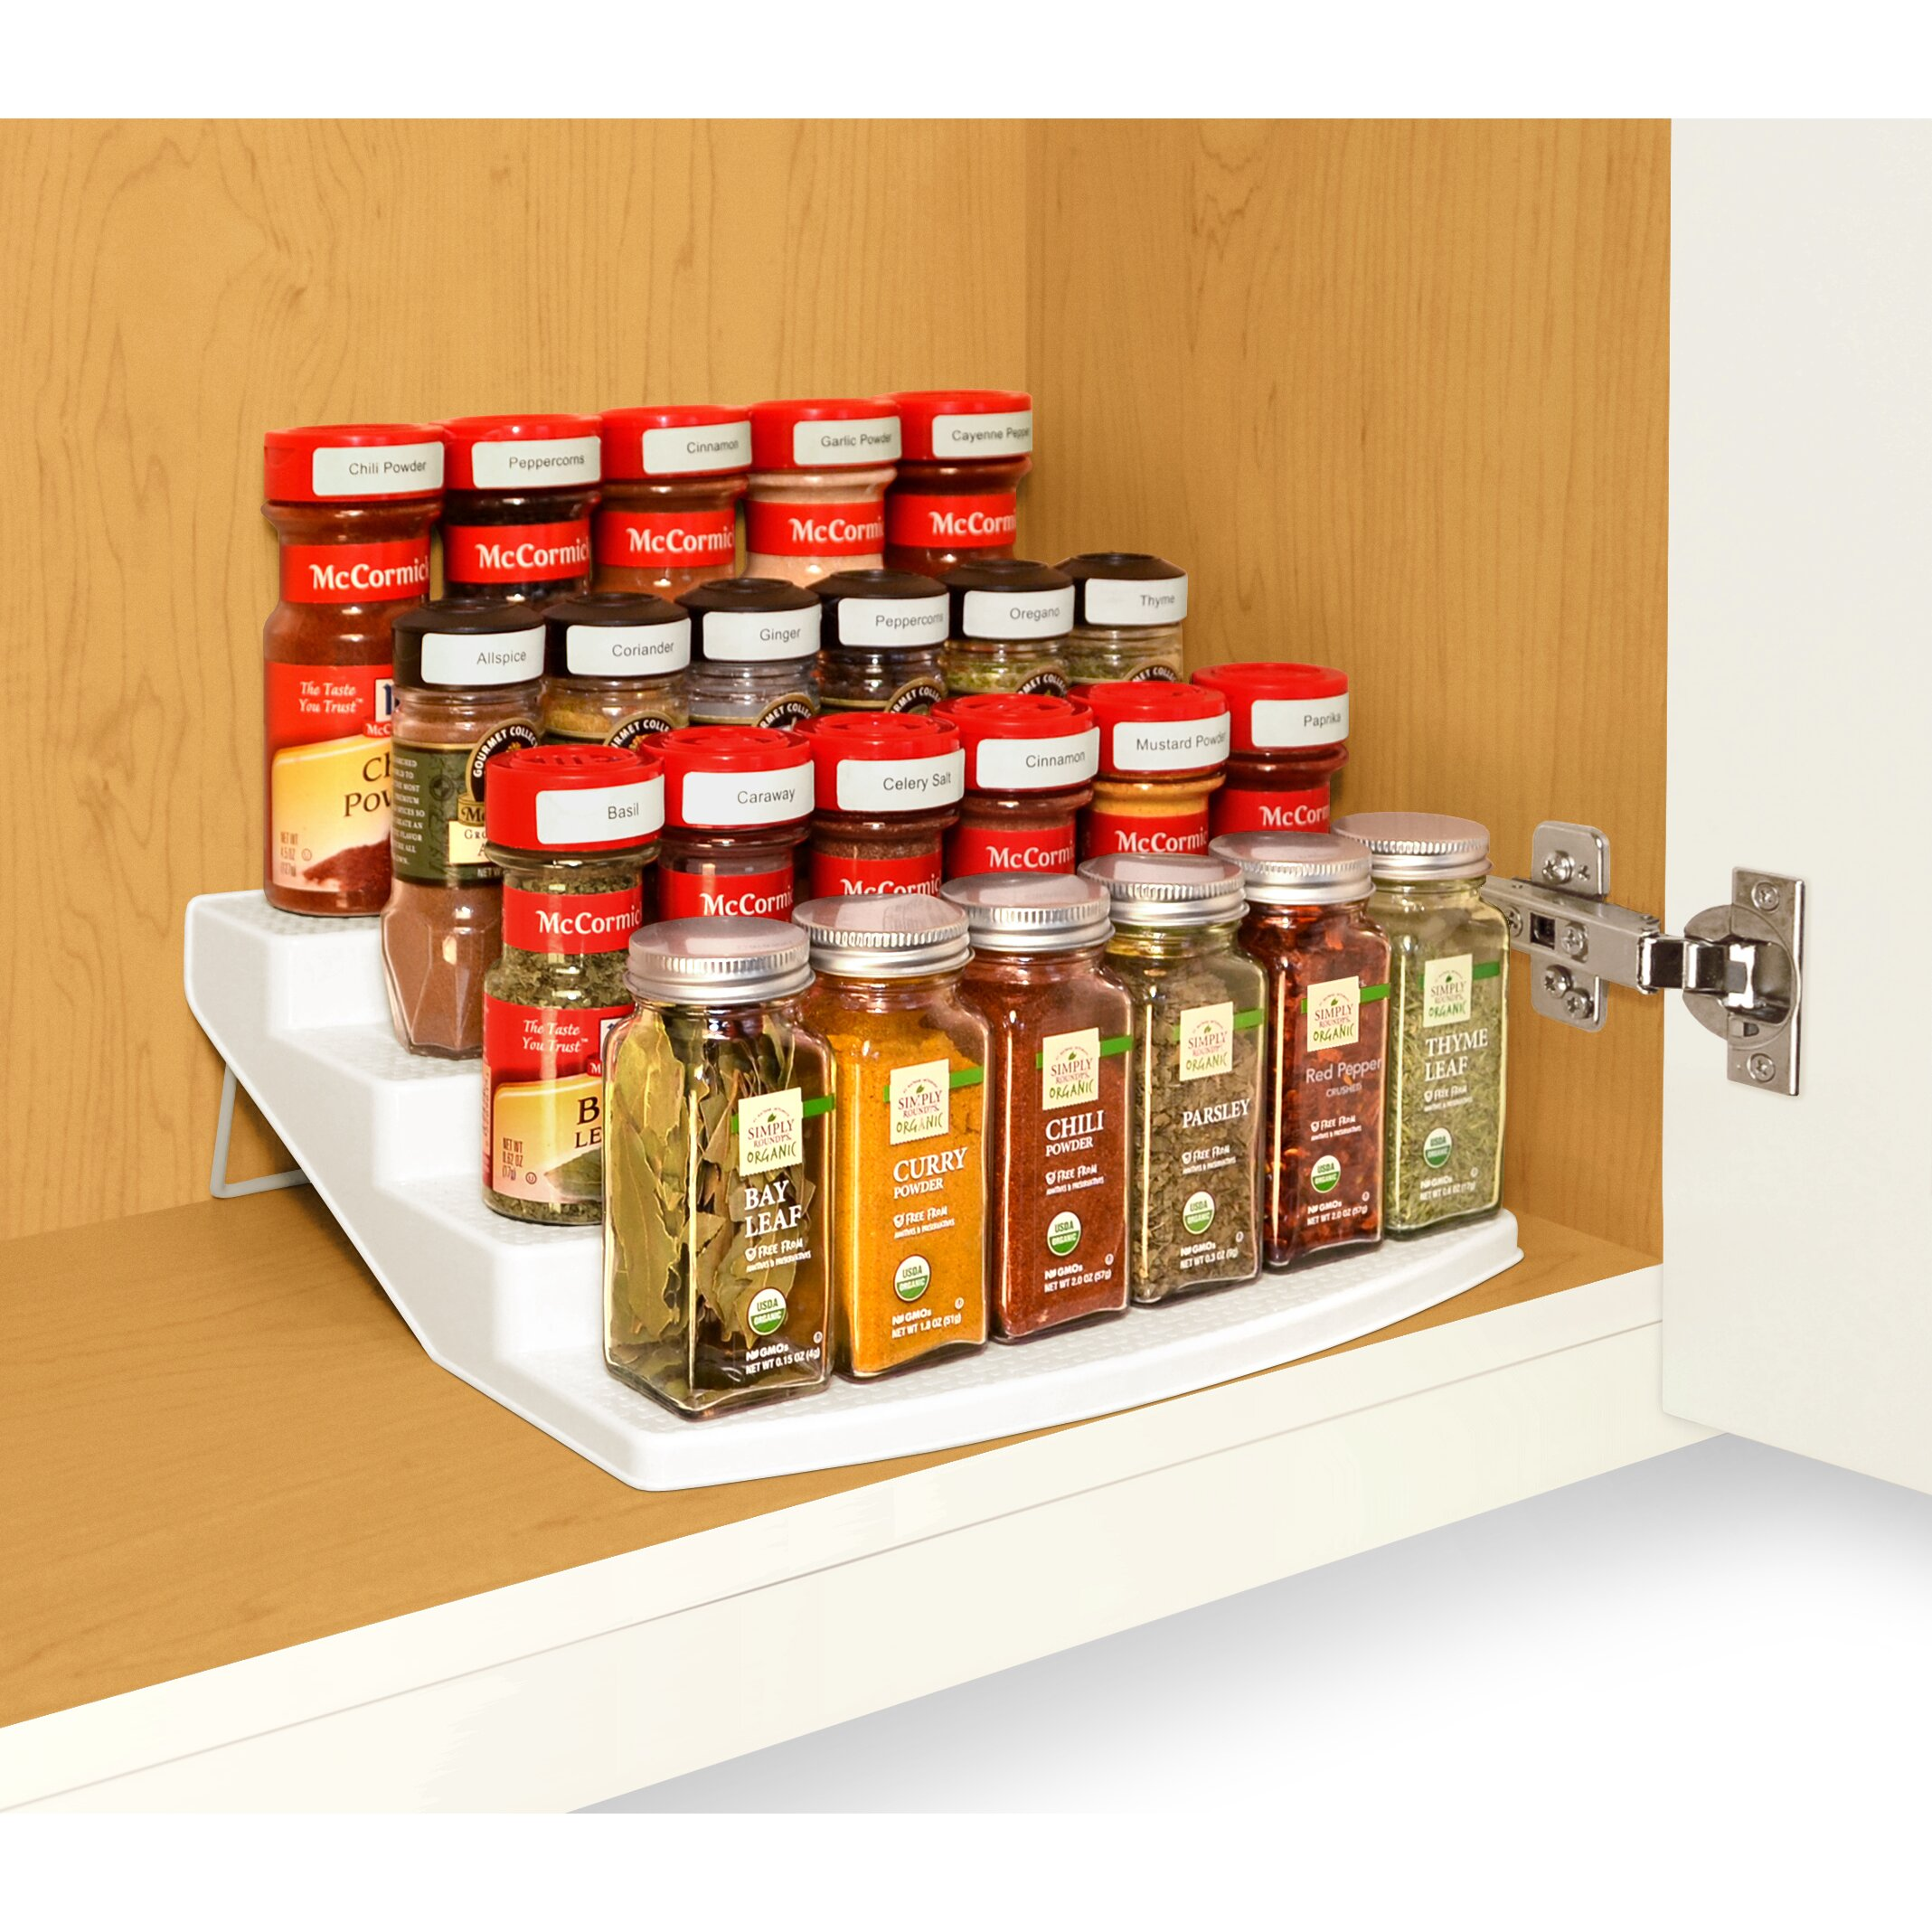 Spice Organizers For Kitchen Cabinets: Spice Steps 4-Tier Cabinet Spice Rack Organizer